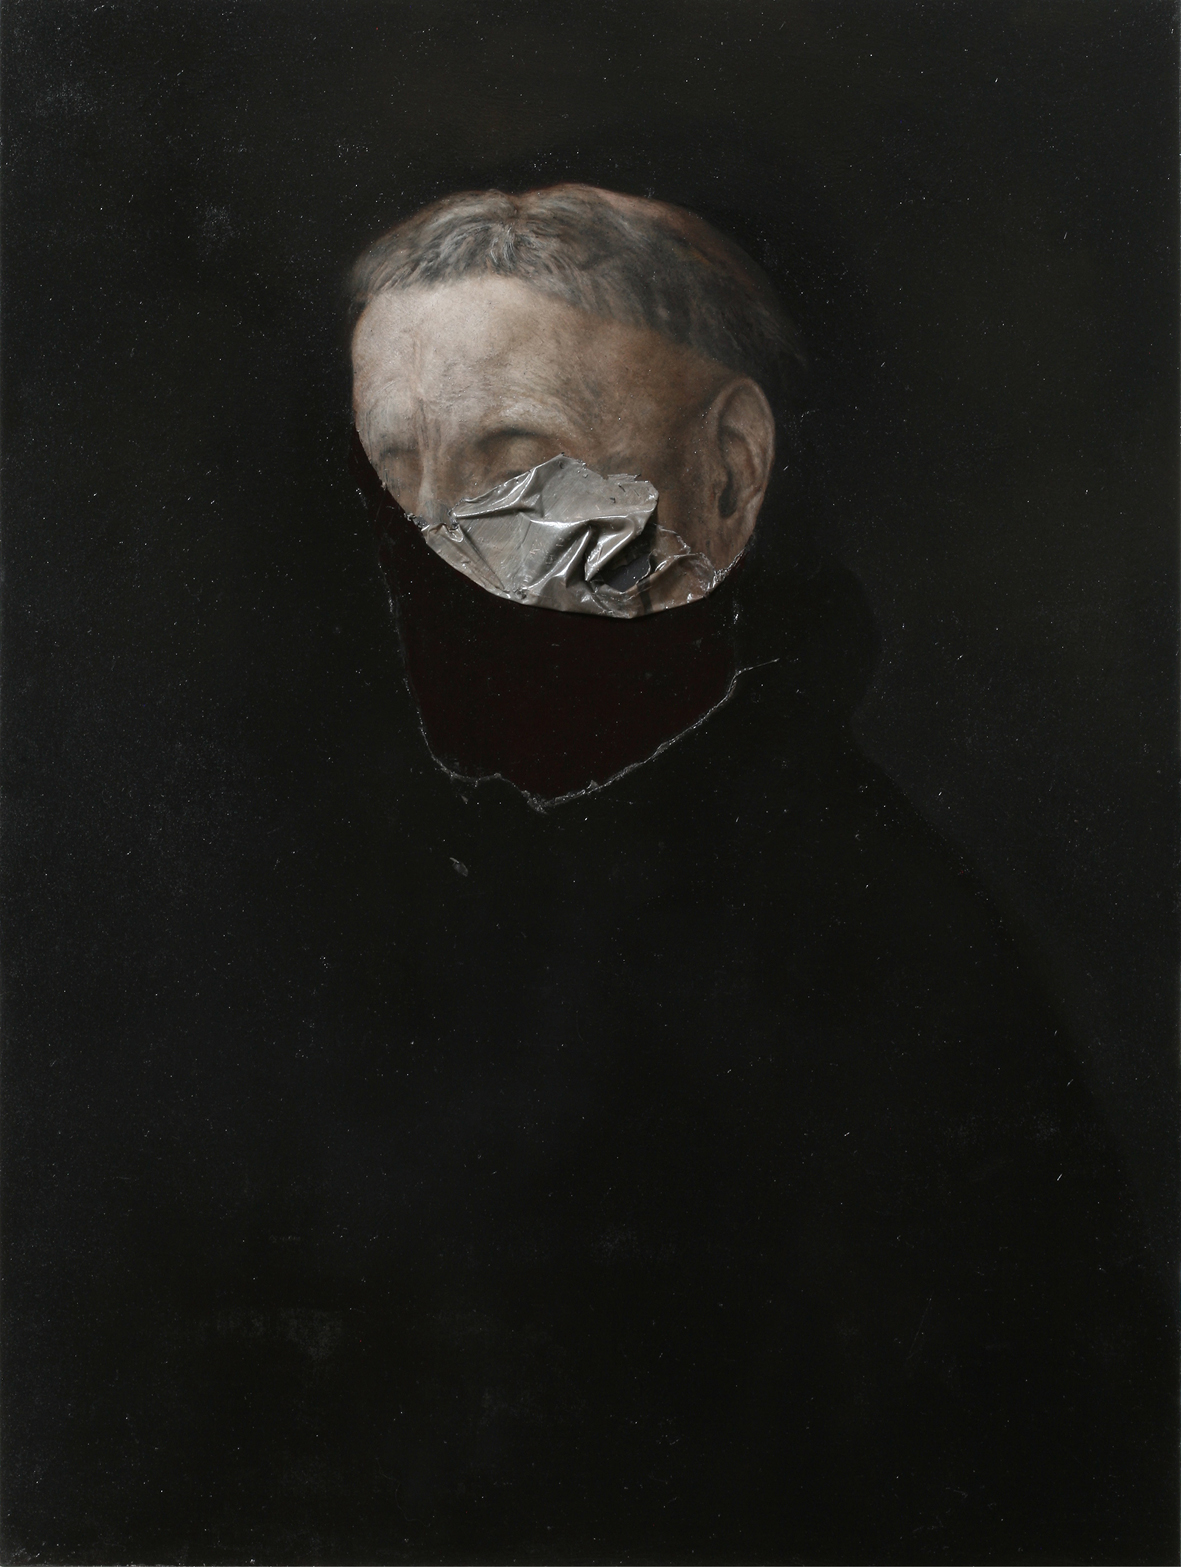 The Works of Nicola Samori: ns_10_20120930_1713920941.jpg